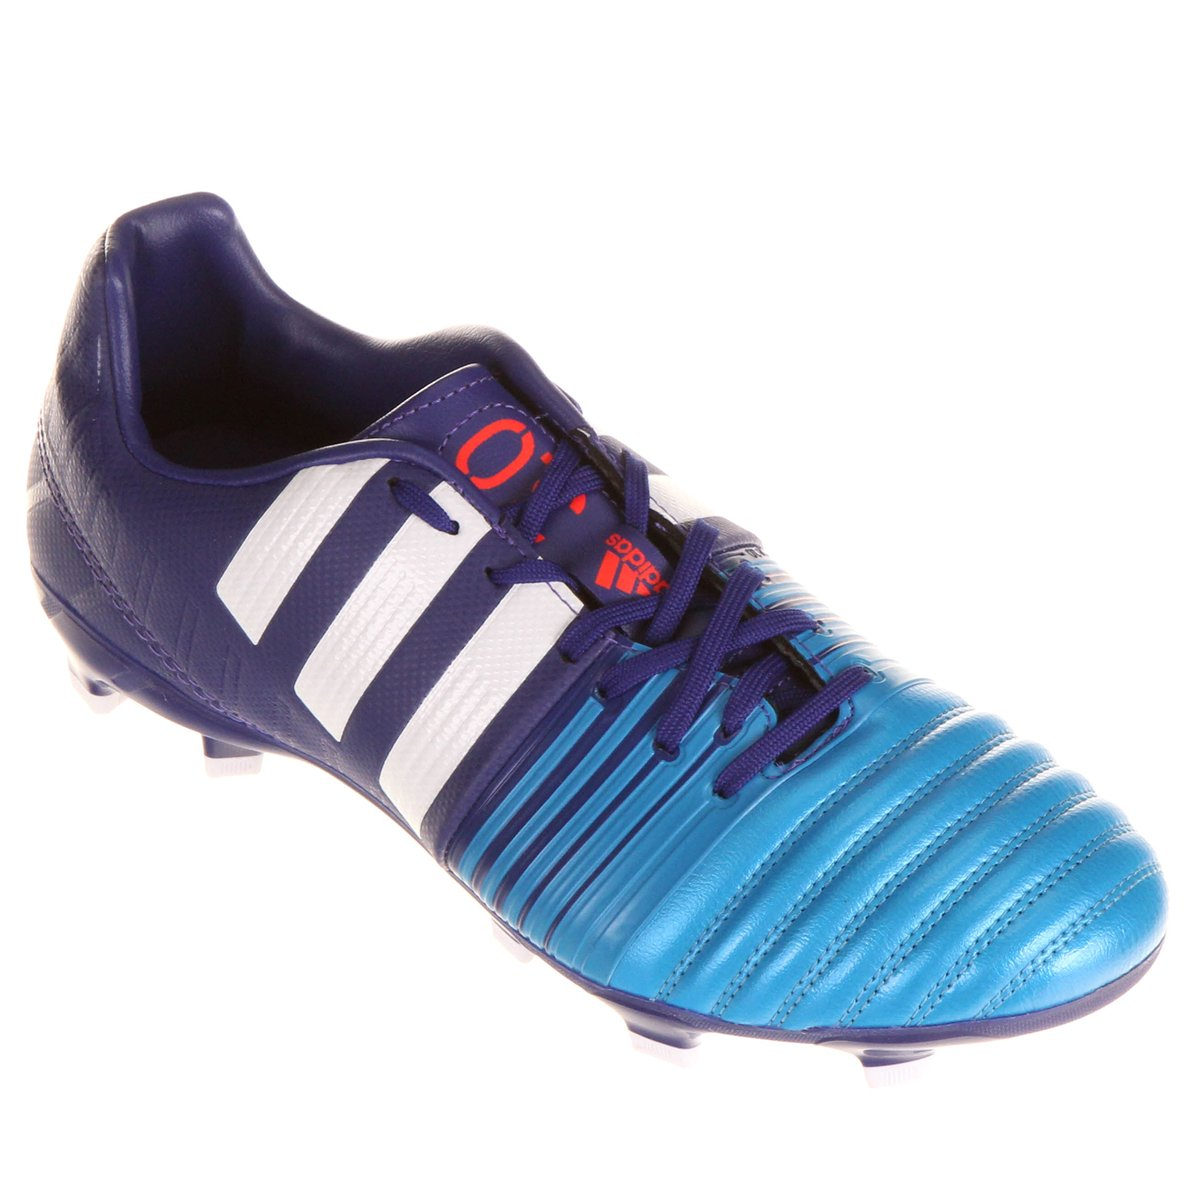 separation shoes 64880 78afb ... football boot ukru05ik9764 c3106 52b5a discount code for coupon for  chuteira adidas nitrocharge 3.0 fg campo azul turquesamarinho 44a35 03659  f008c